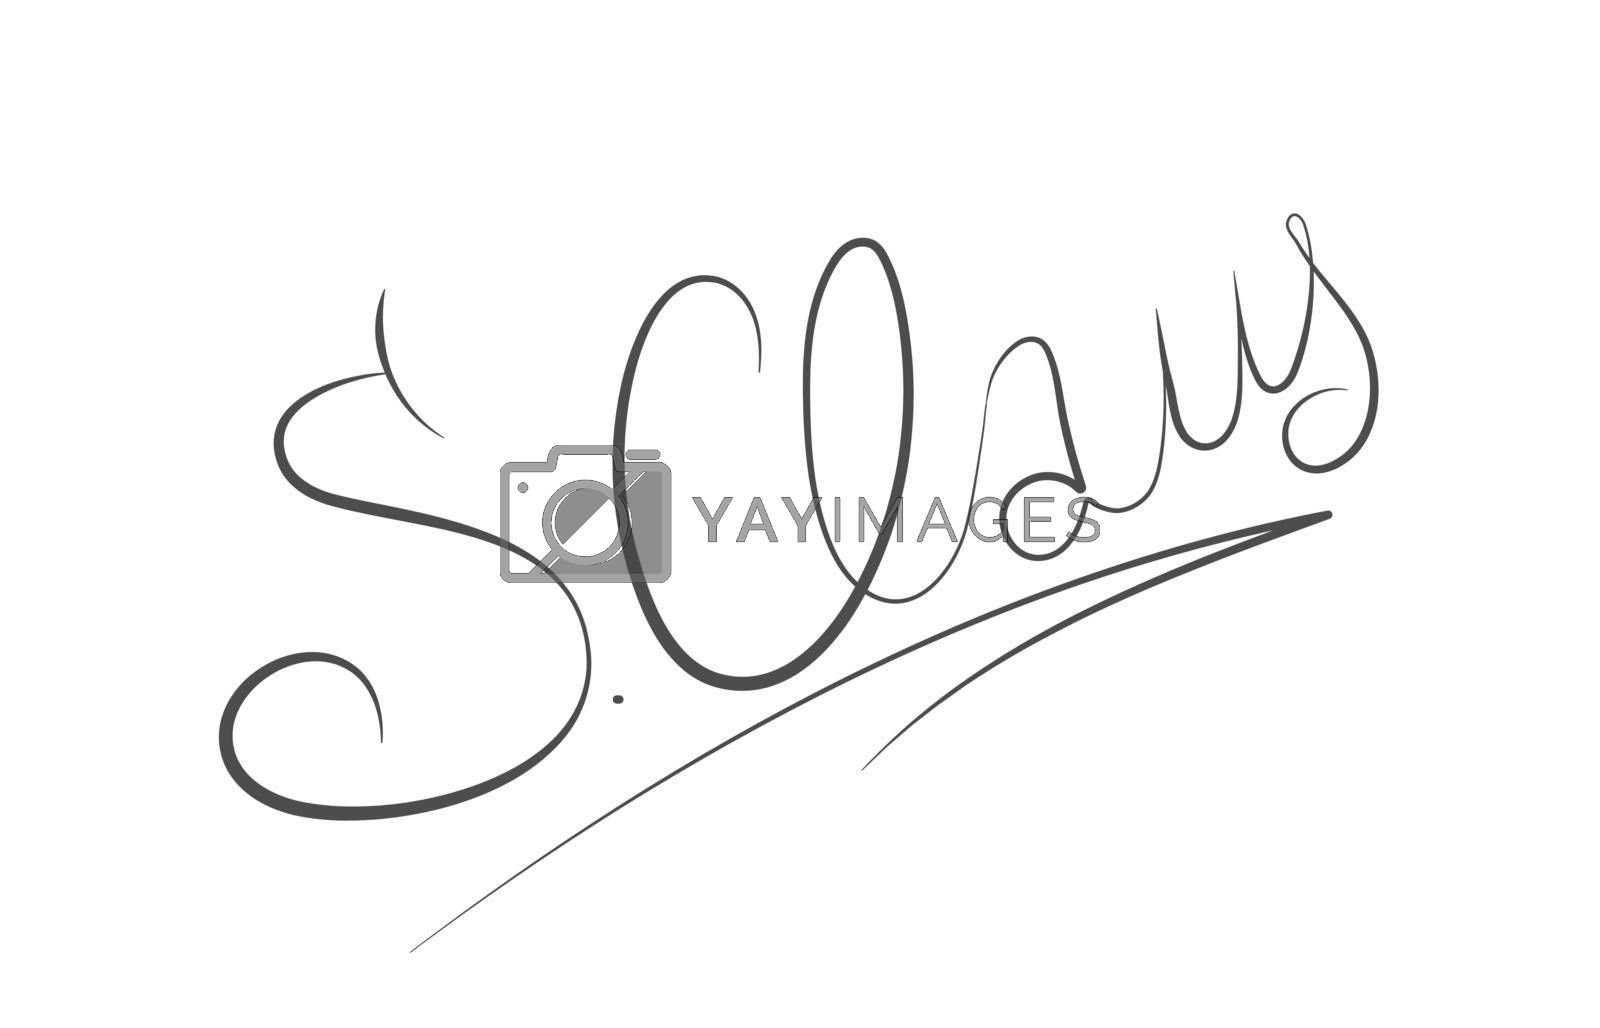 calligraphic Christmas signature of Santa Claus. Isolated vector illustration for greeting cards, banners, prints, posters, scrapbooking. Simple Style